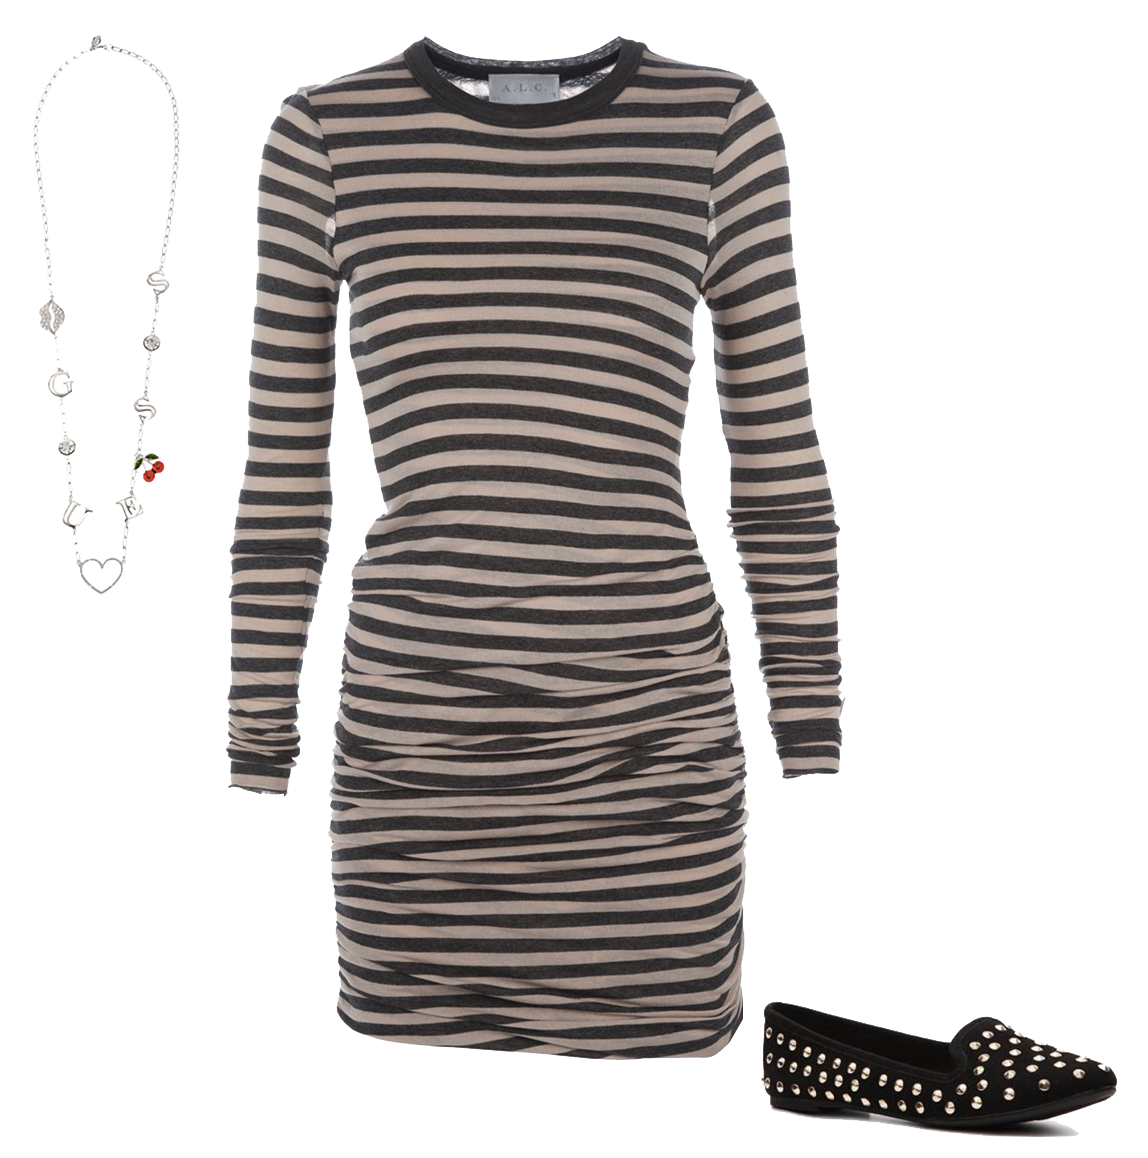 Striped Dress Image PNG Image